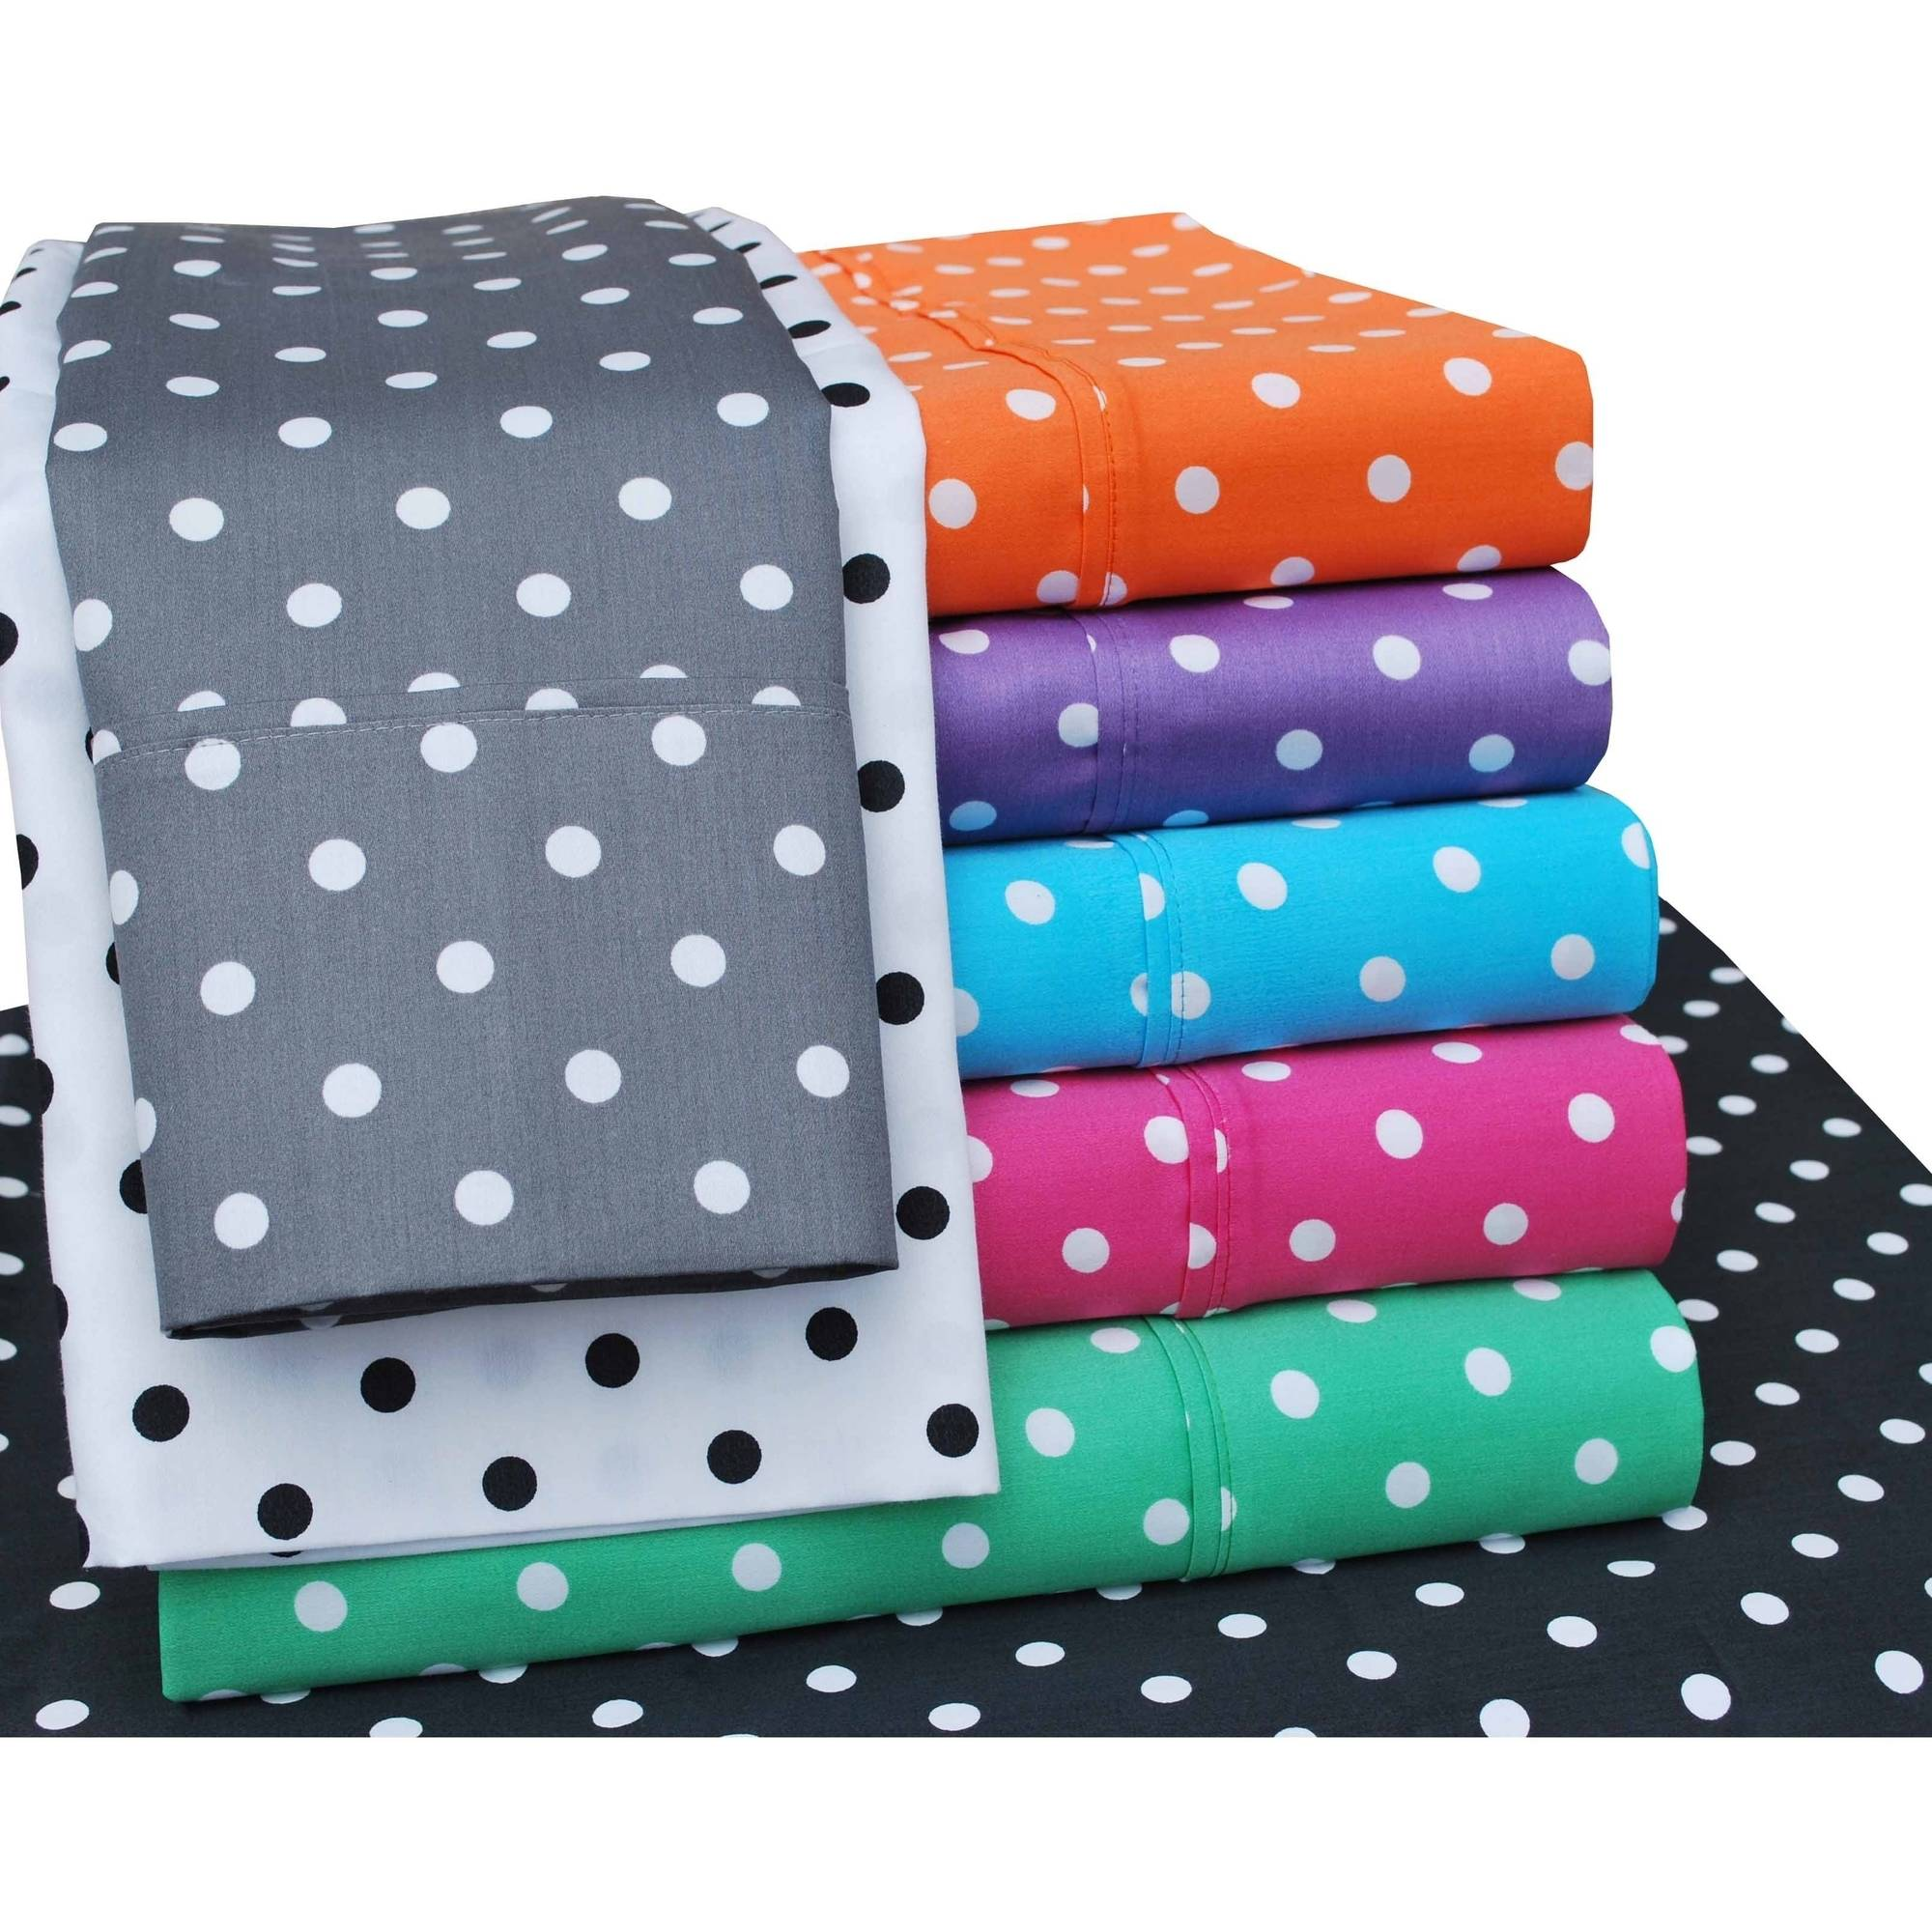 Superior 600 Thread Count Wrinkle-Resistant Luxury Cotton Polka Dots Design Sheet Set